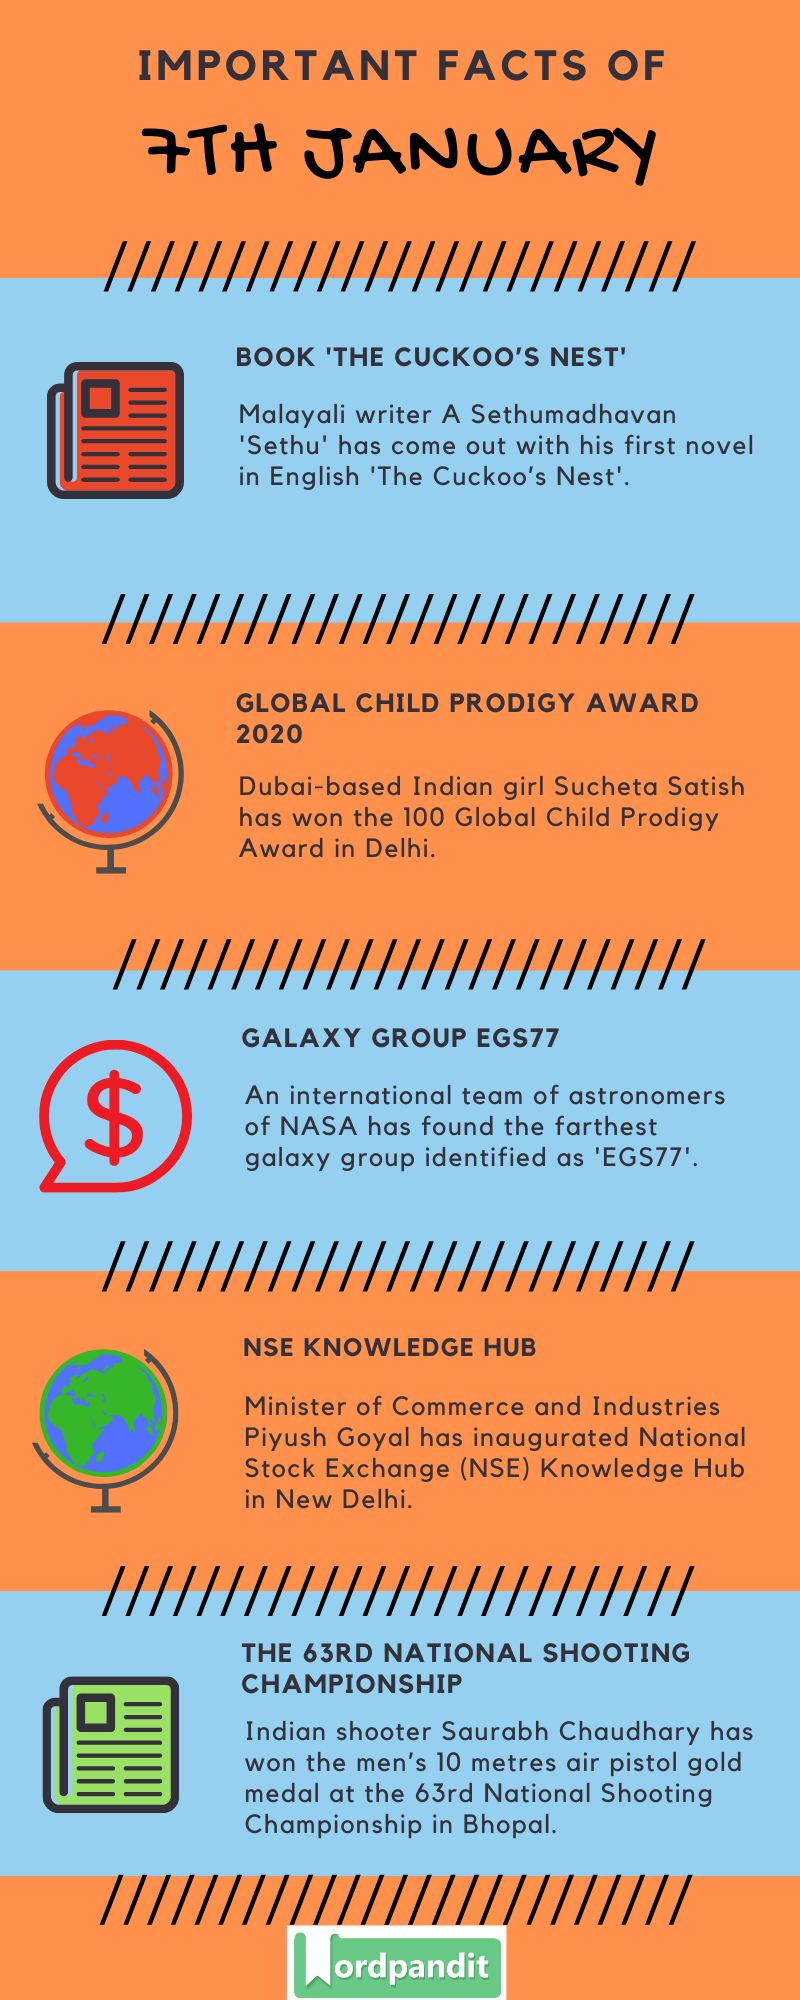 Daily Current Affairs 7 January 2020 Current Affairs Quiz 7 January 2020 Current Affairs Infographic